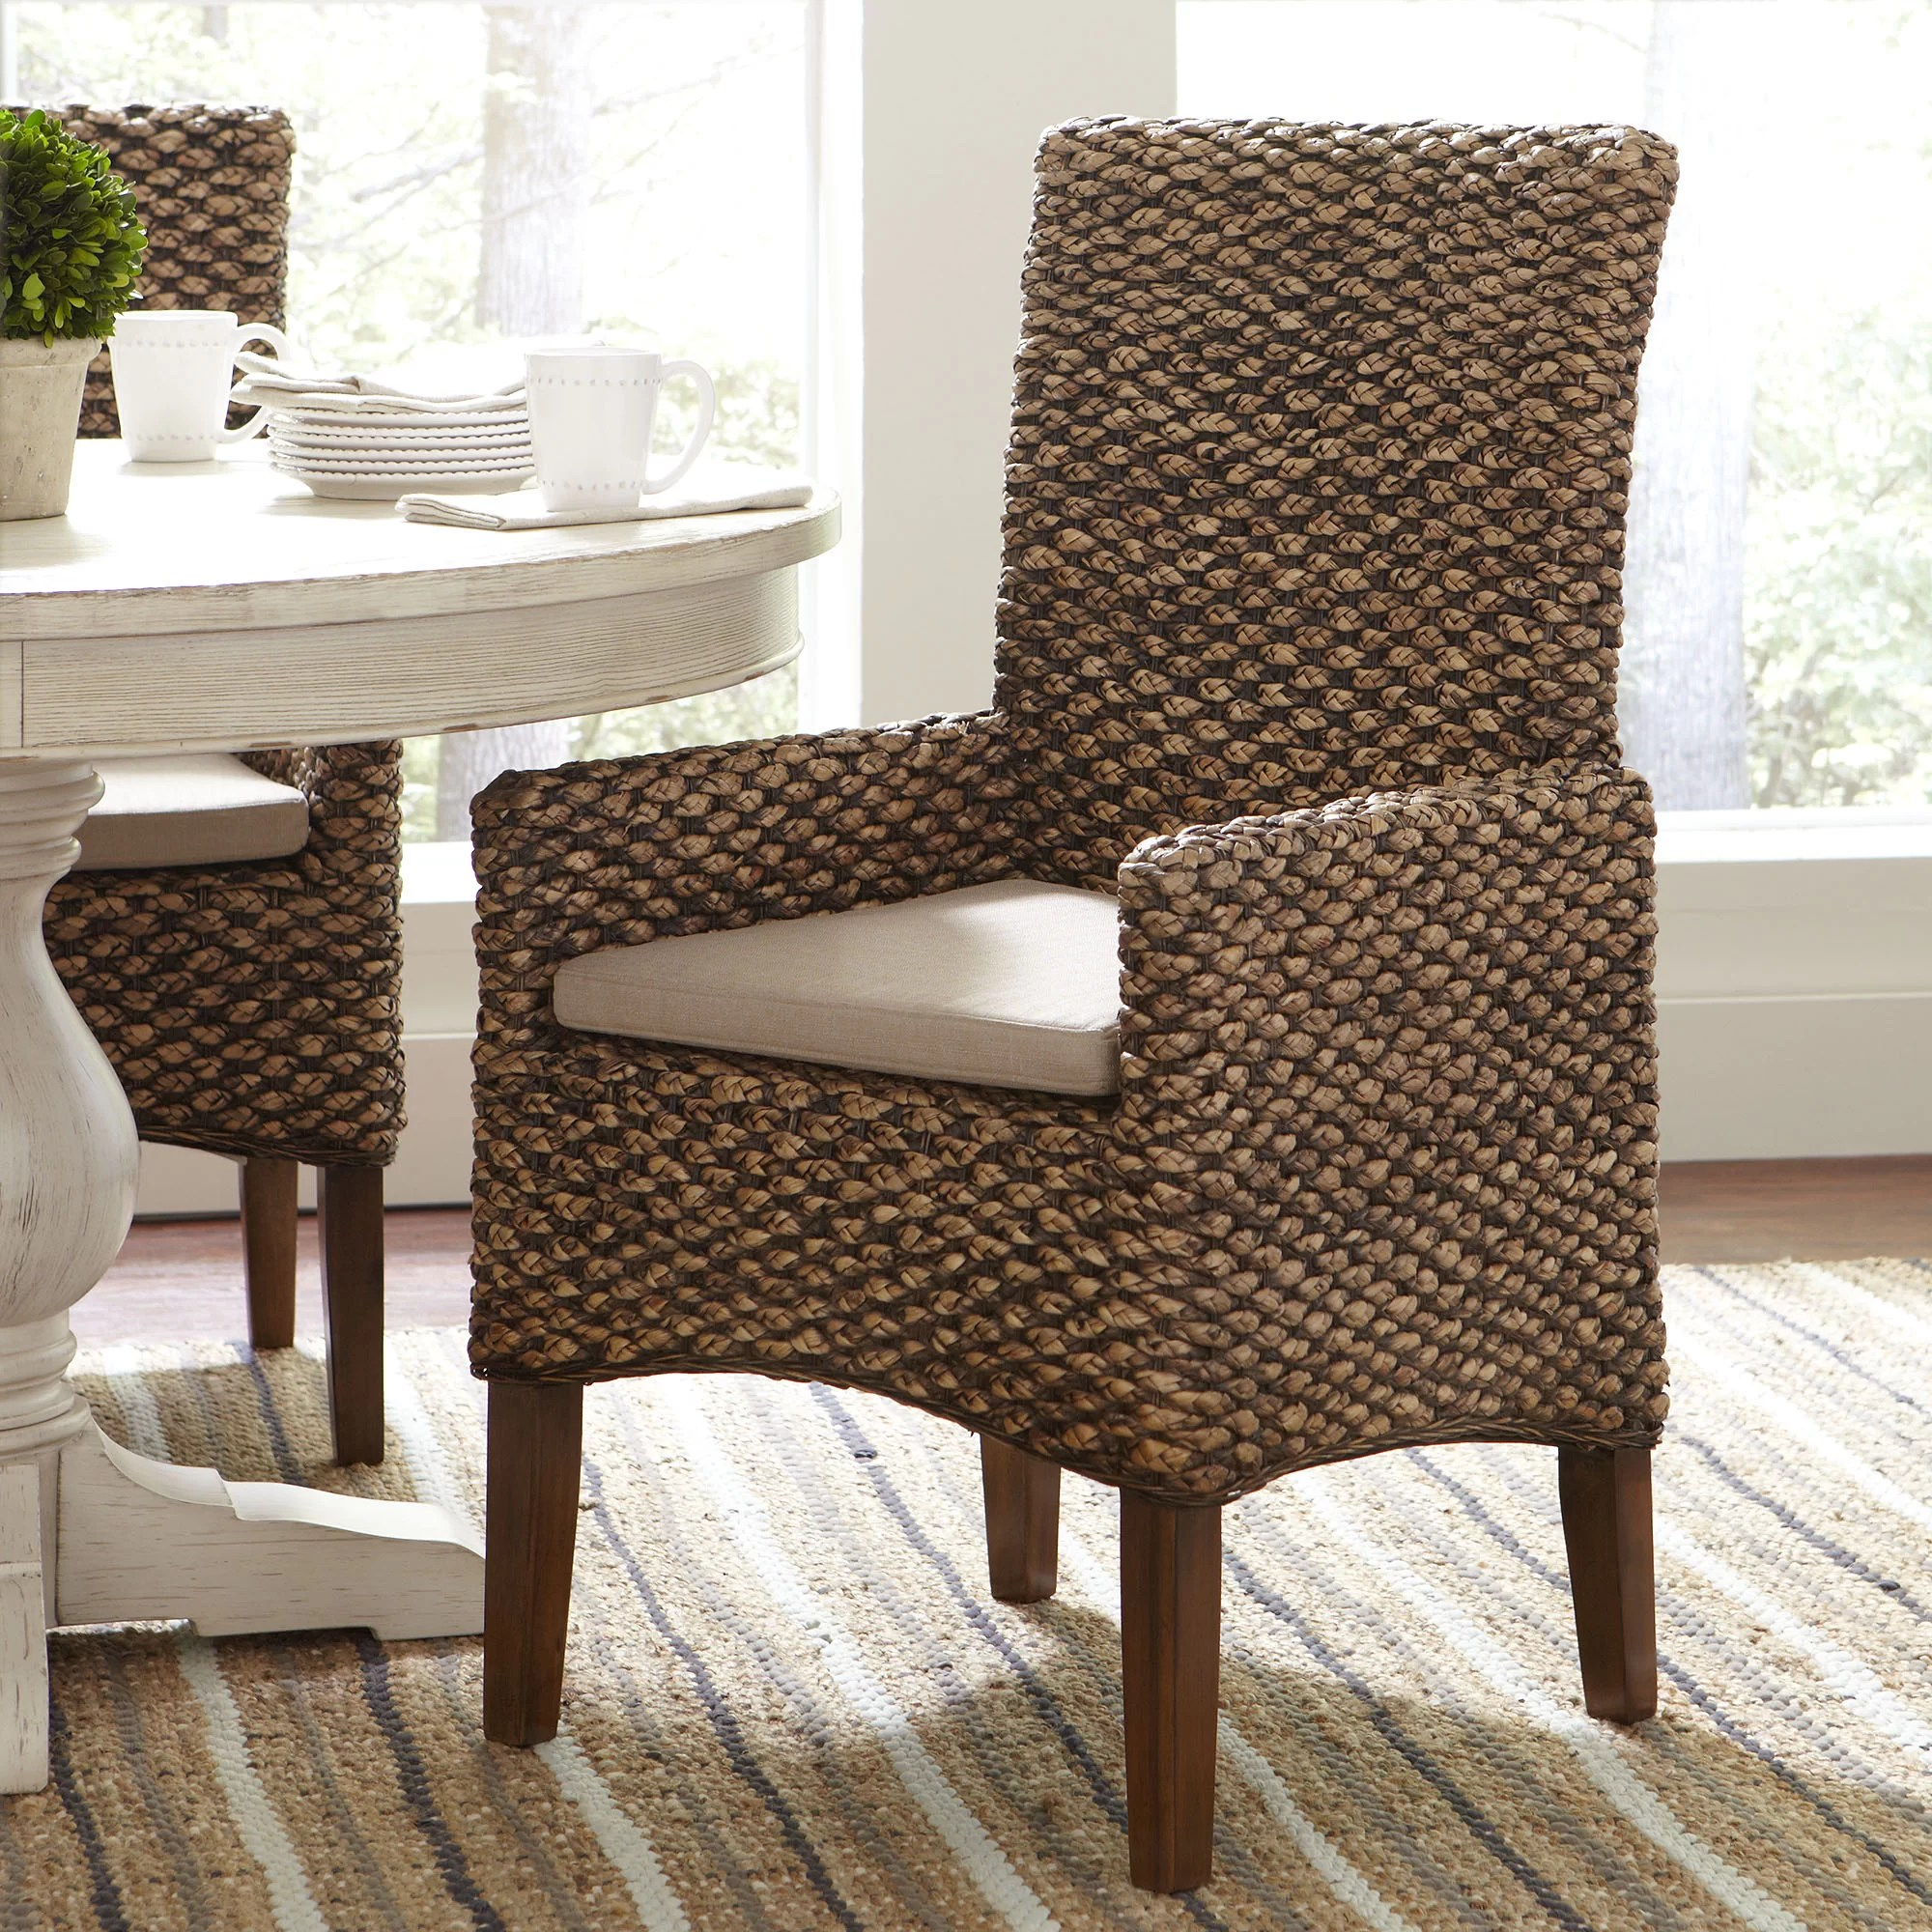 Seagrass Dining Chair Heliodoro Woven Seagrass Arm Chairs